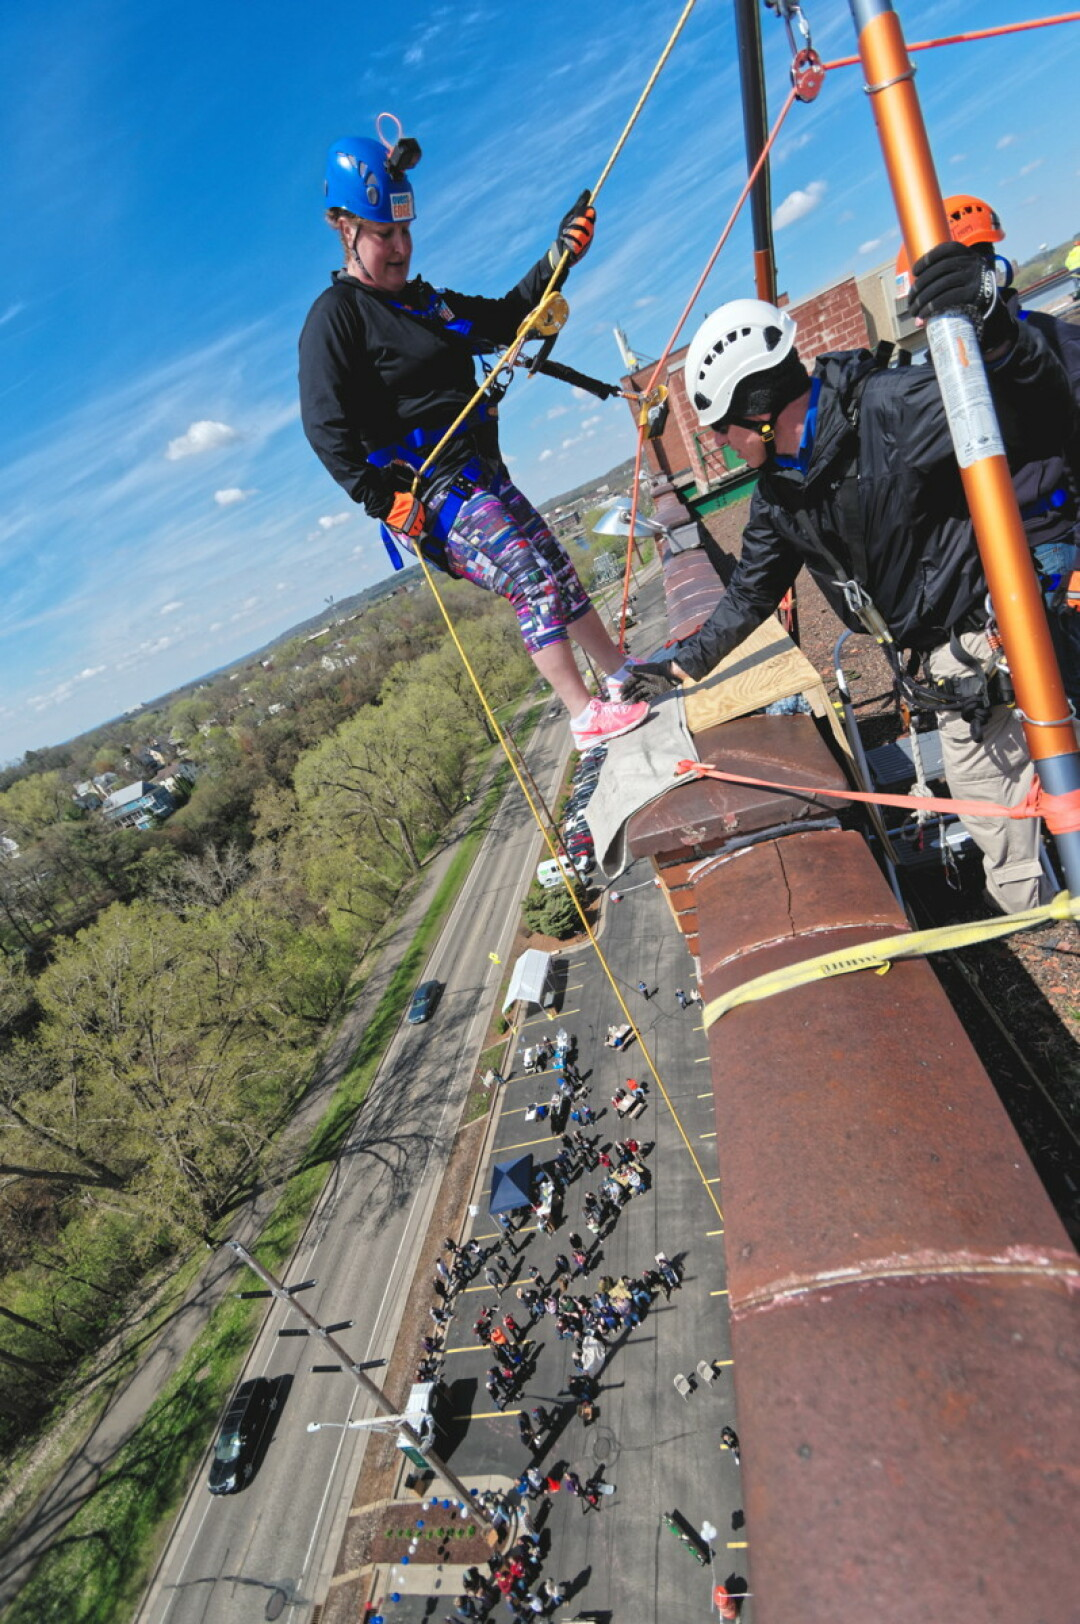 ONE OF THE EDGIEST PHOTOS VOLUME ONE HAS EVER PUBLISHED. On Saturday, May 11, locals rappelled down the side of Banbury Place on Galloway Street near downtown Eau Claire to help raise money for the Children's Dyslexia Center. See more photos at VolumeOne.org